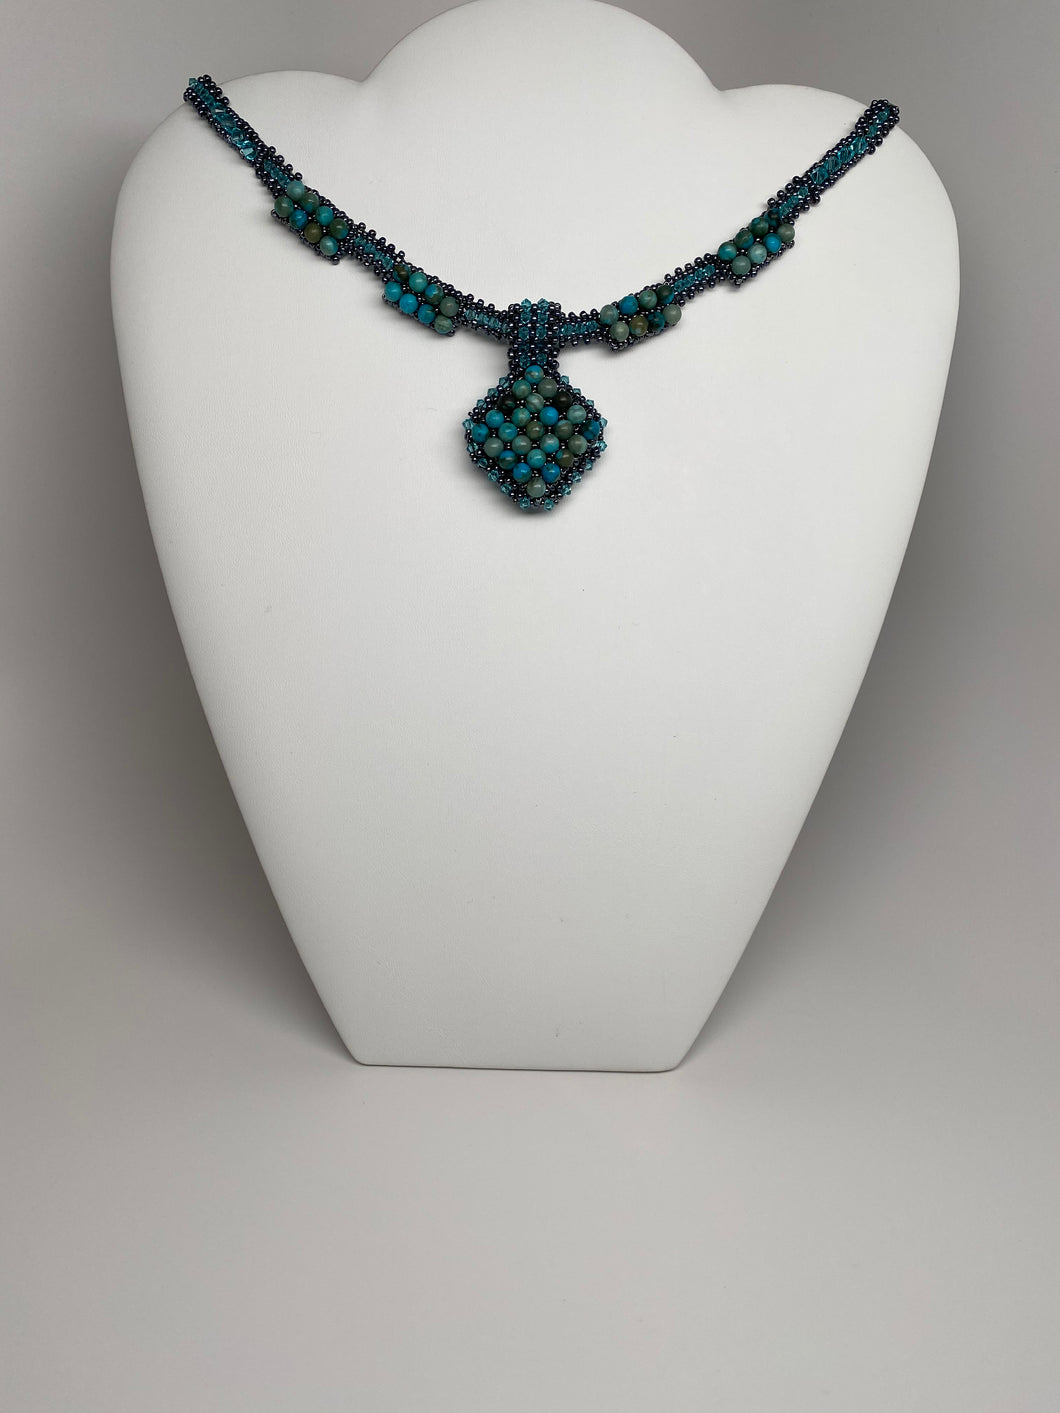 Hand Crafted Swarovski Crystal and Natural Stone Jasper Necklace